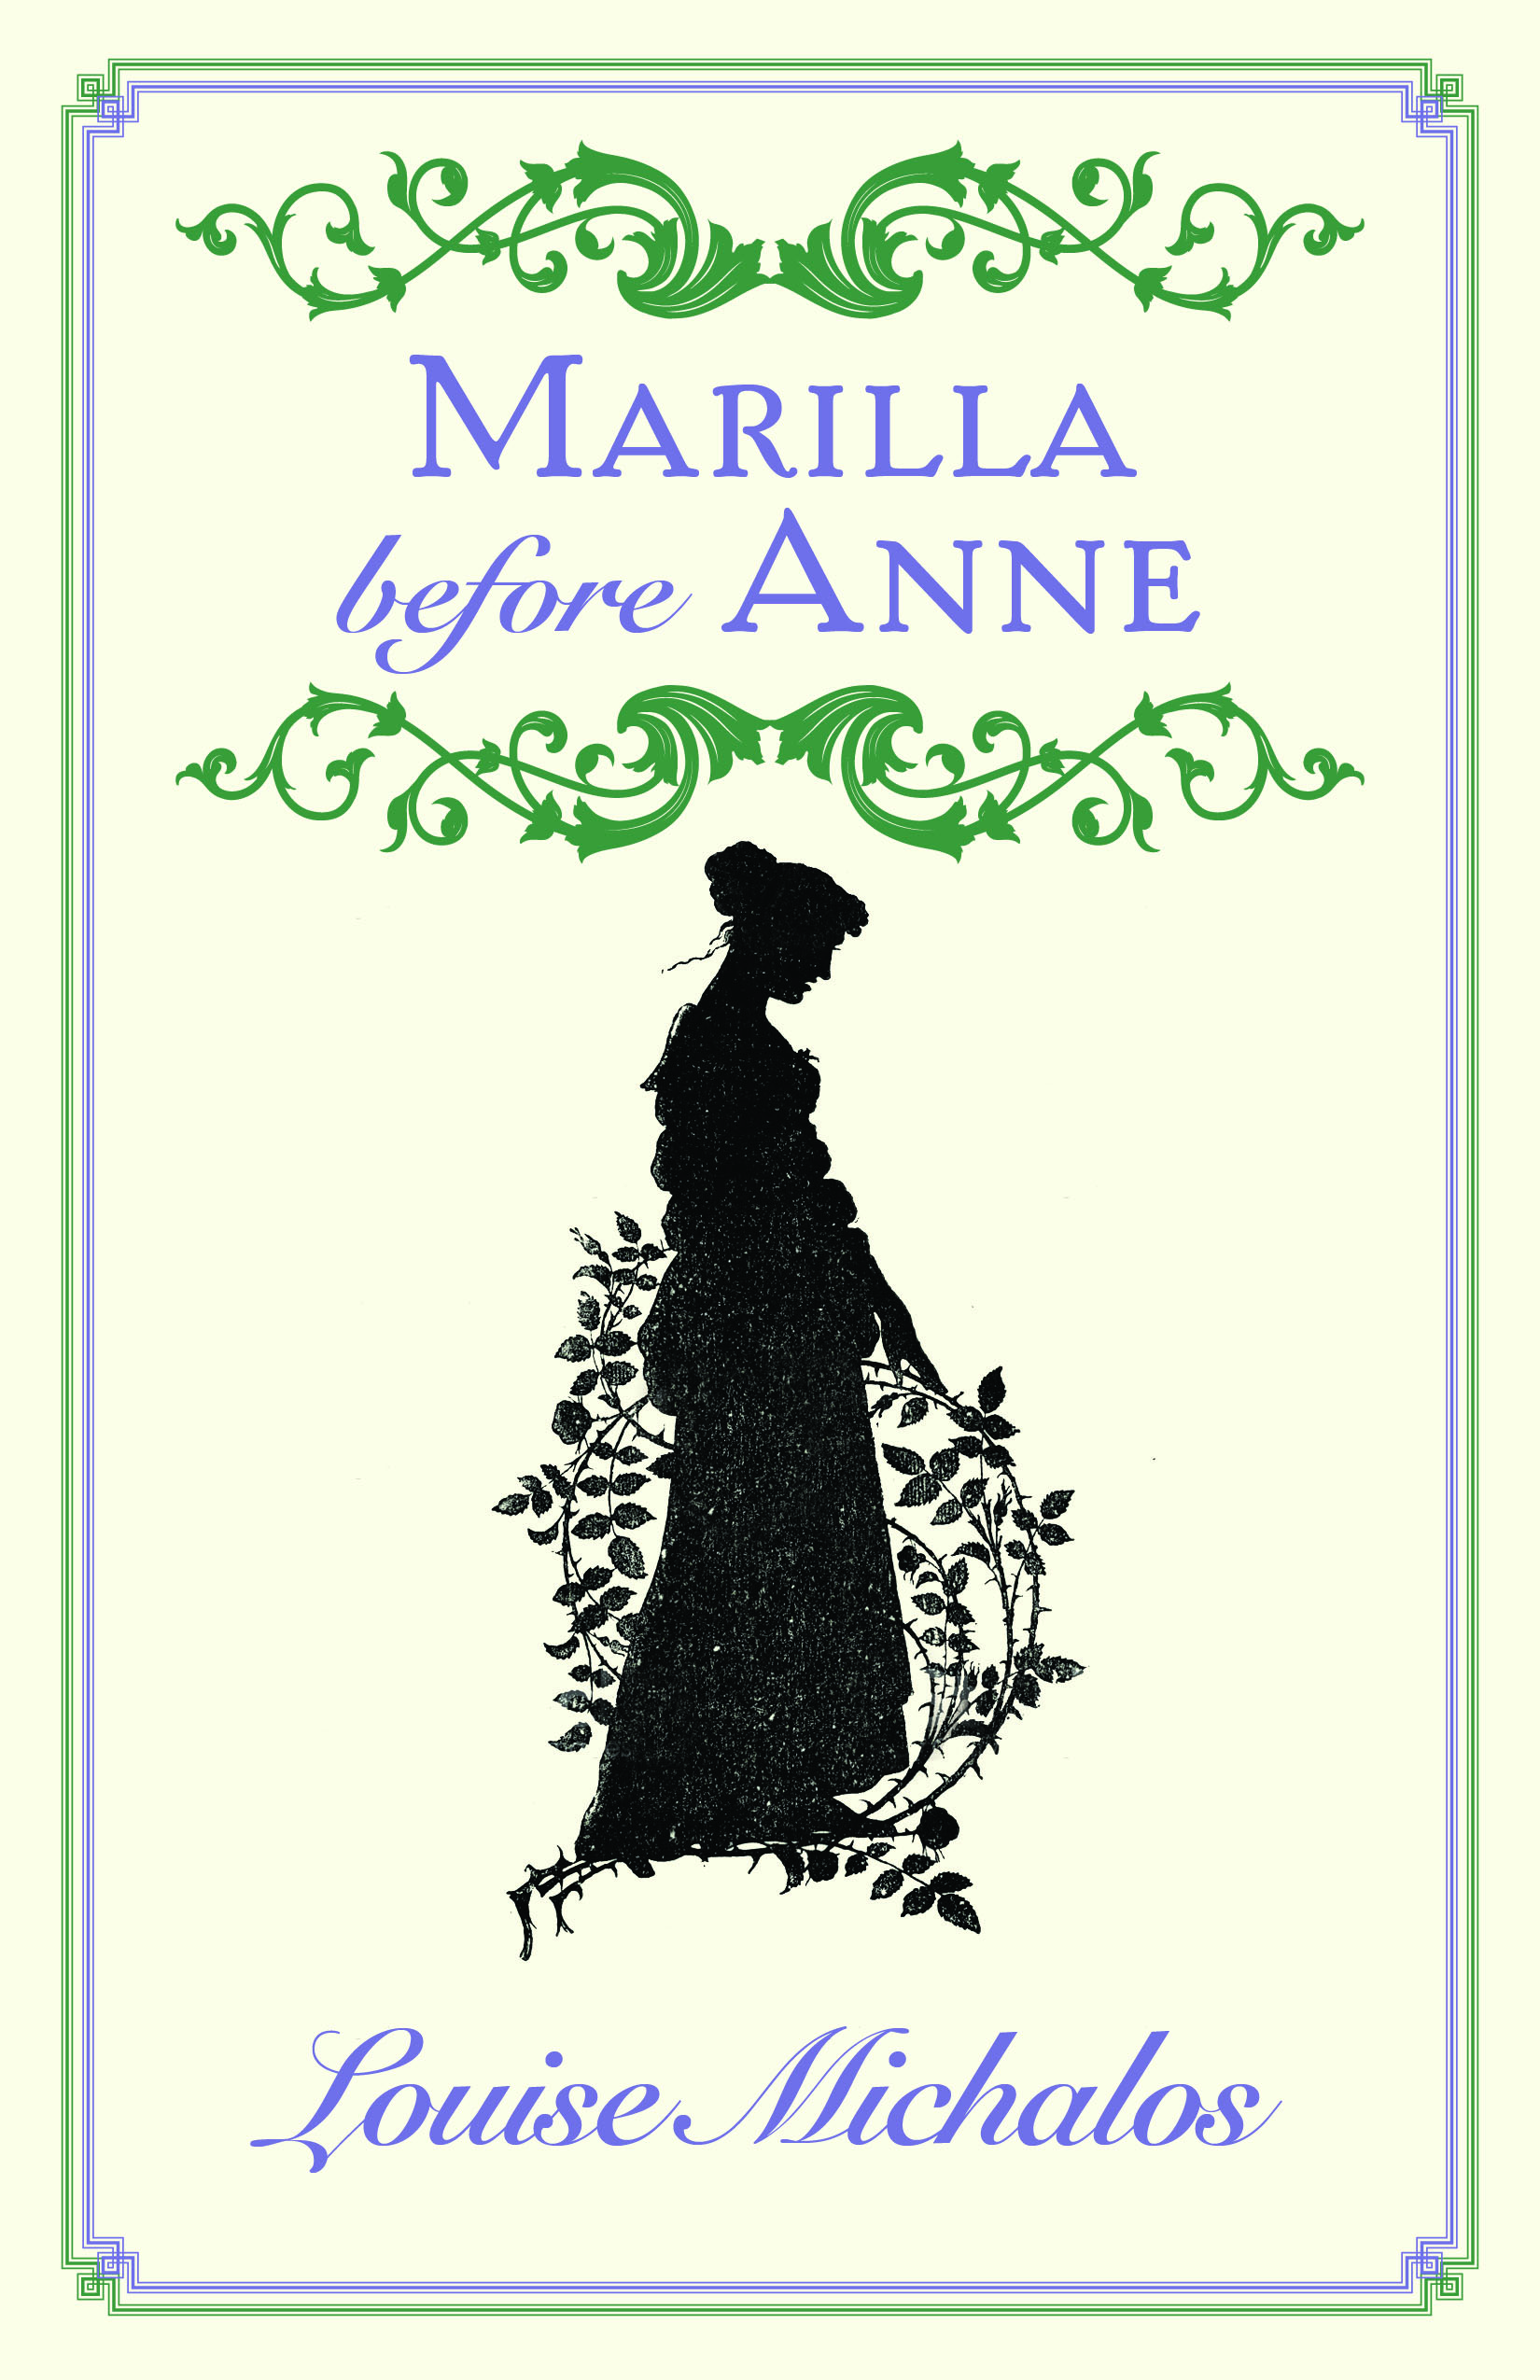 Spinning off Marilla with Love: Why a beloved LM Montgomery character still beguiles